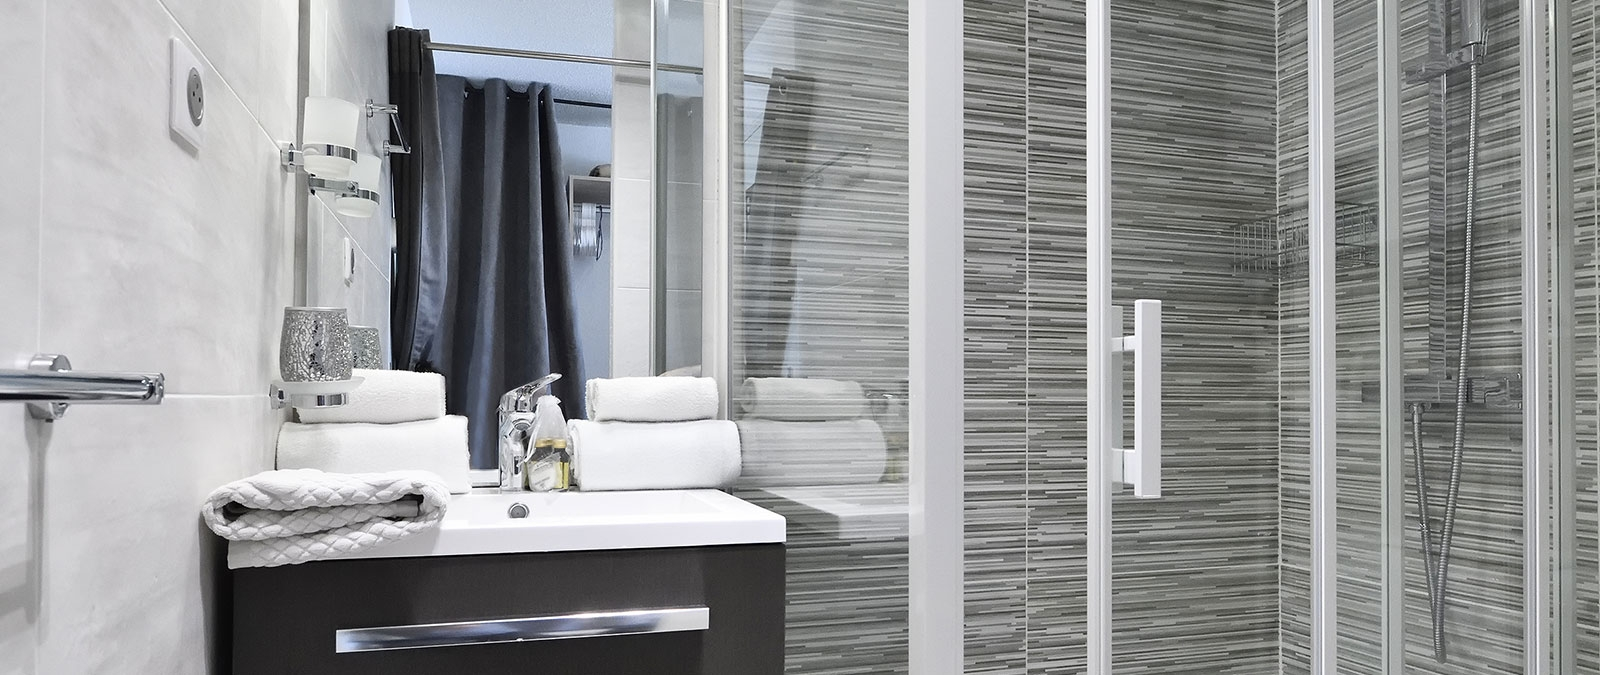 Bathroom with shower Folie Douce naturist studio flat for rent